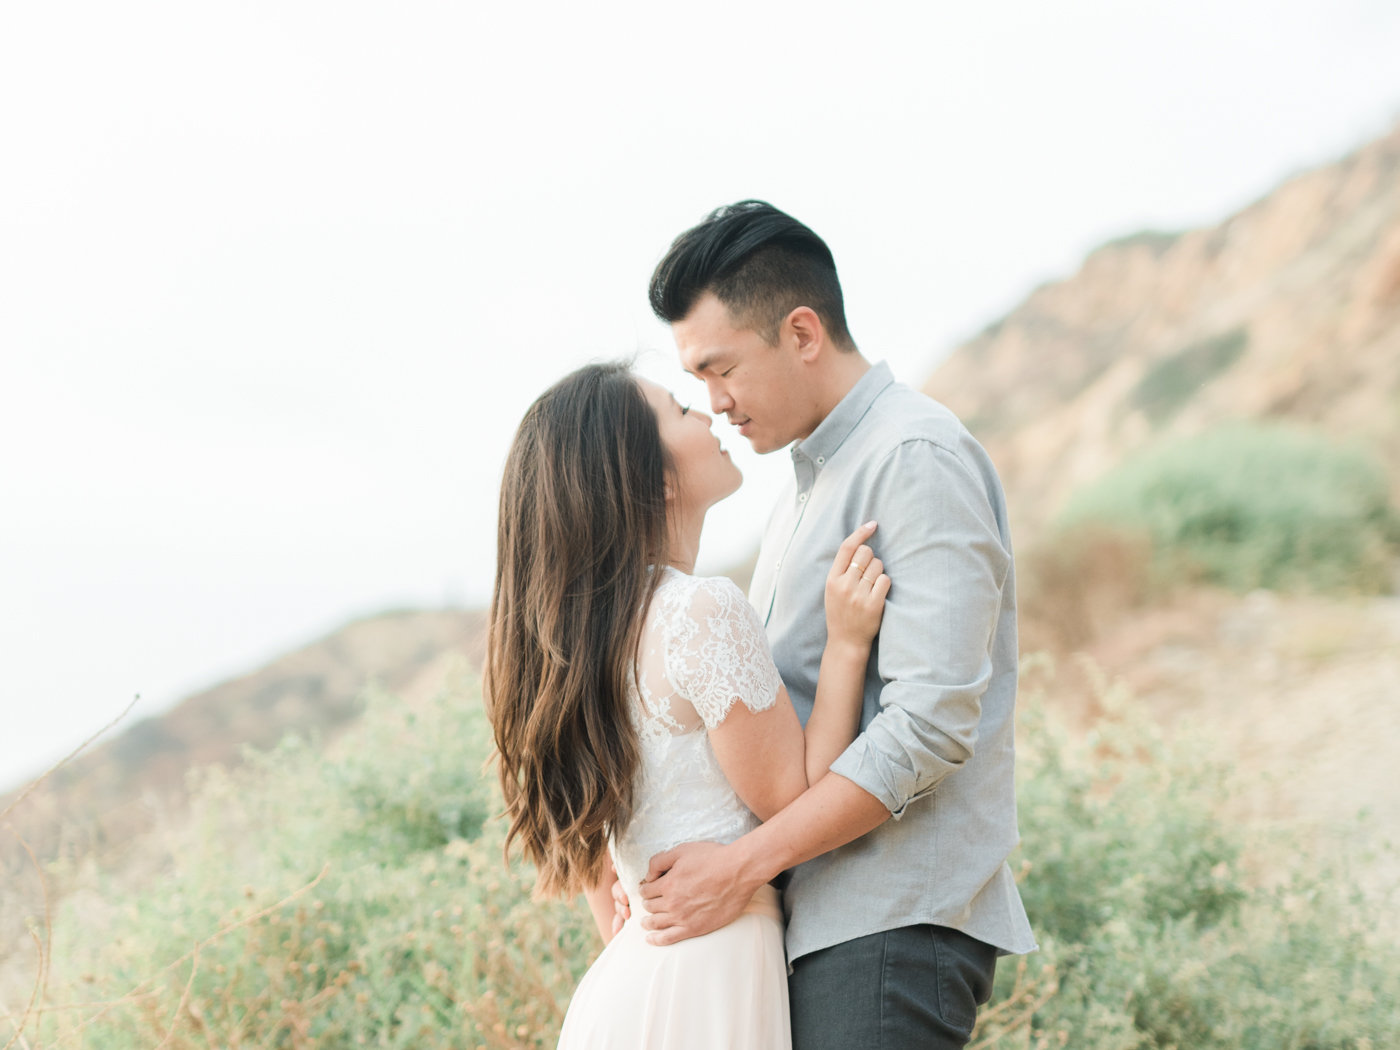 Palos_Verdes_Beach_Engagement_Session_Los_Angles_Fine_Art_Wedding_Photographer-5.jpg